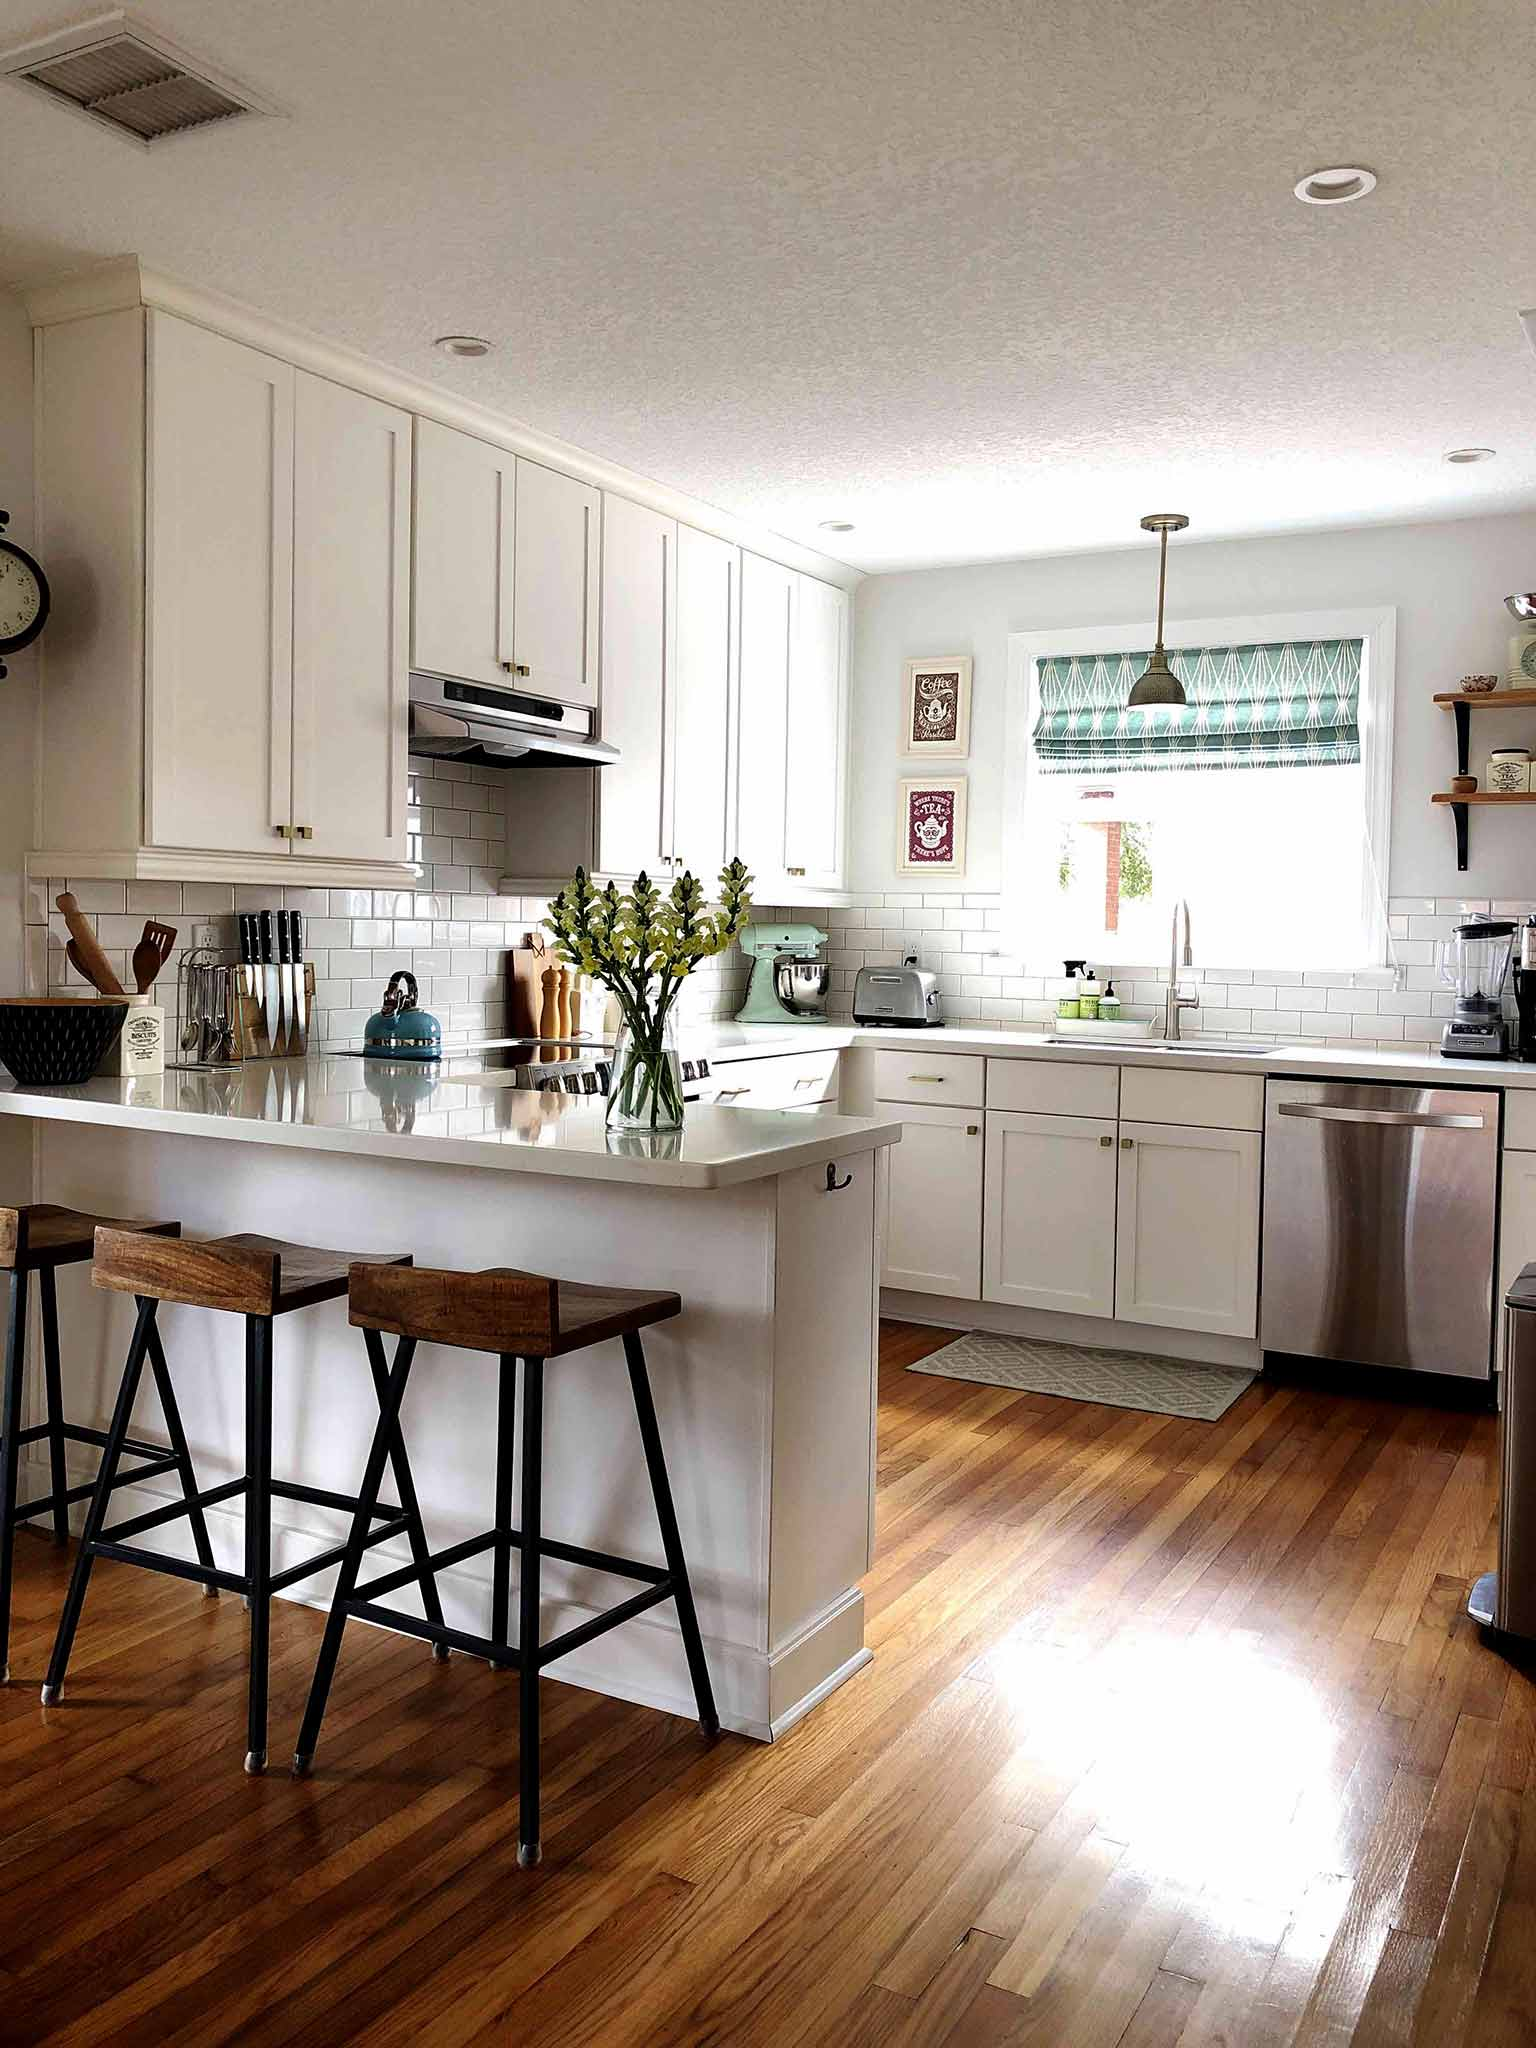 open concept kitchen with white cabinets, white subway tile and hardwood floors